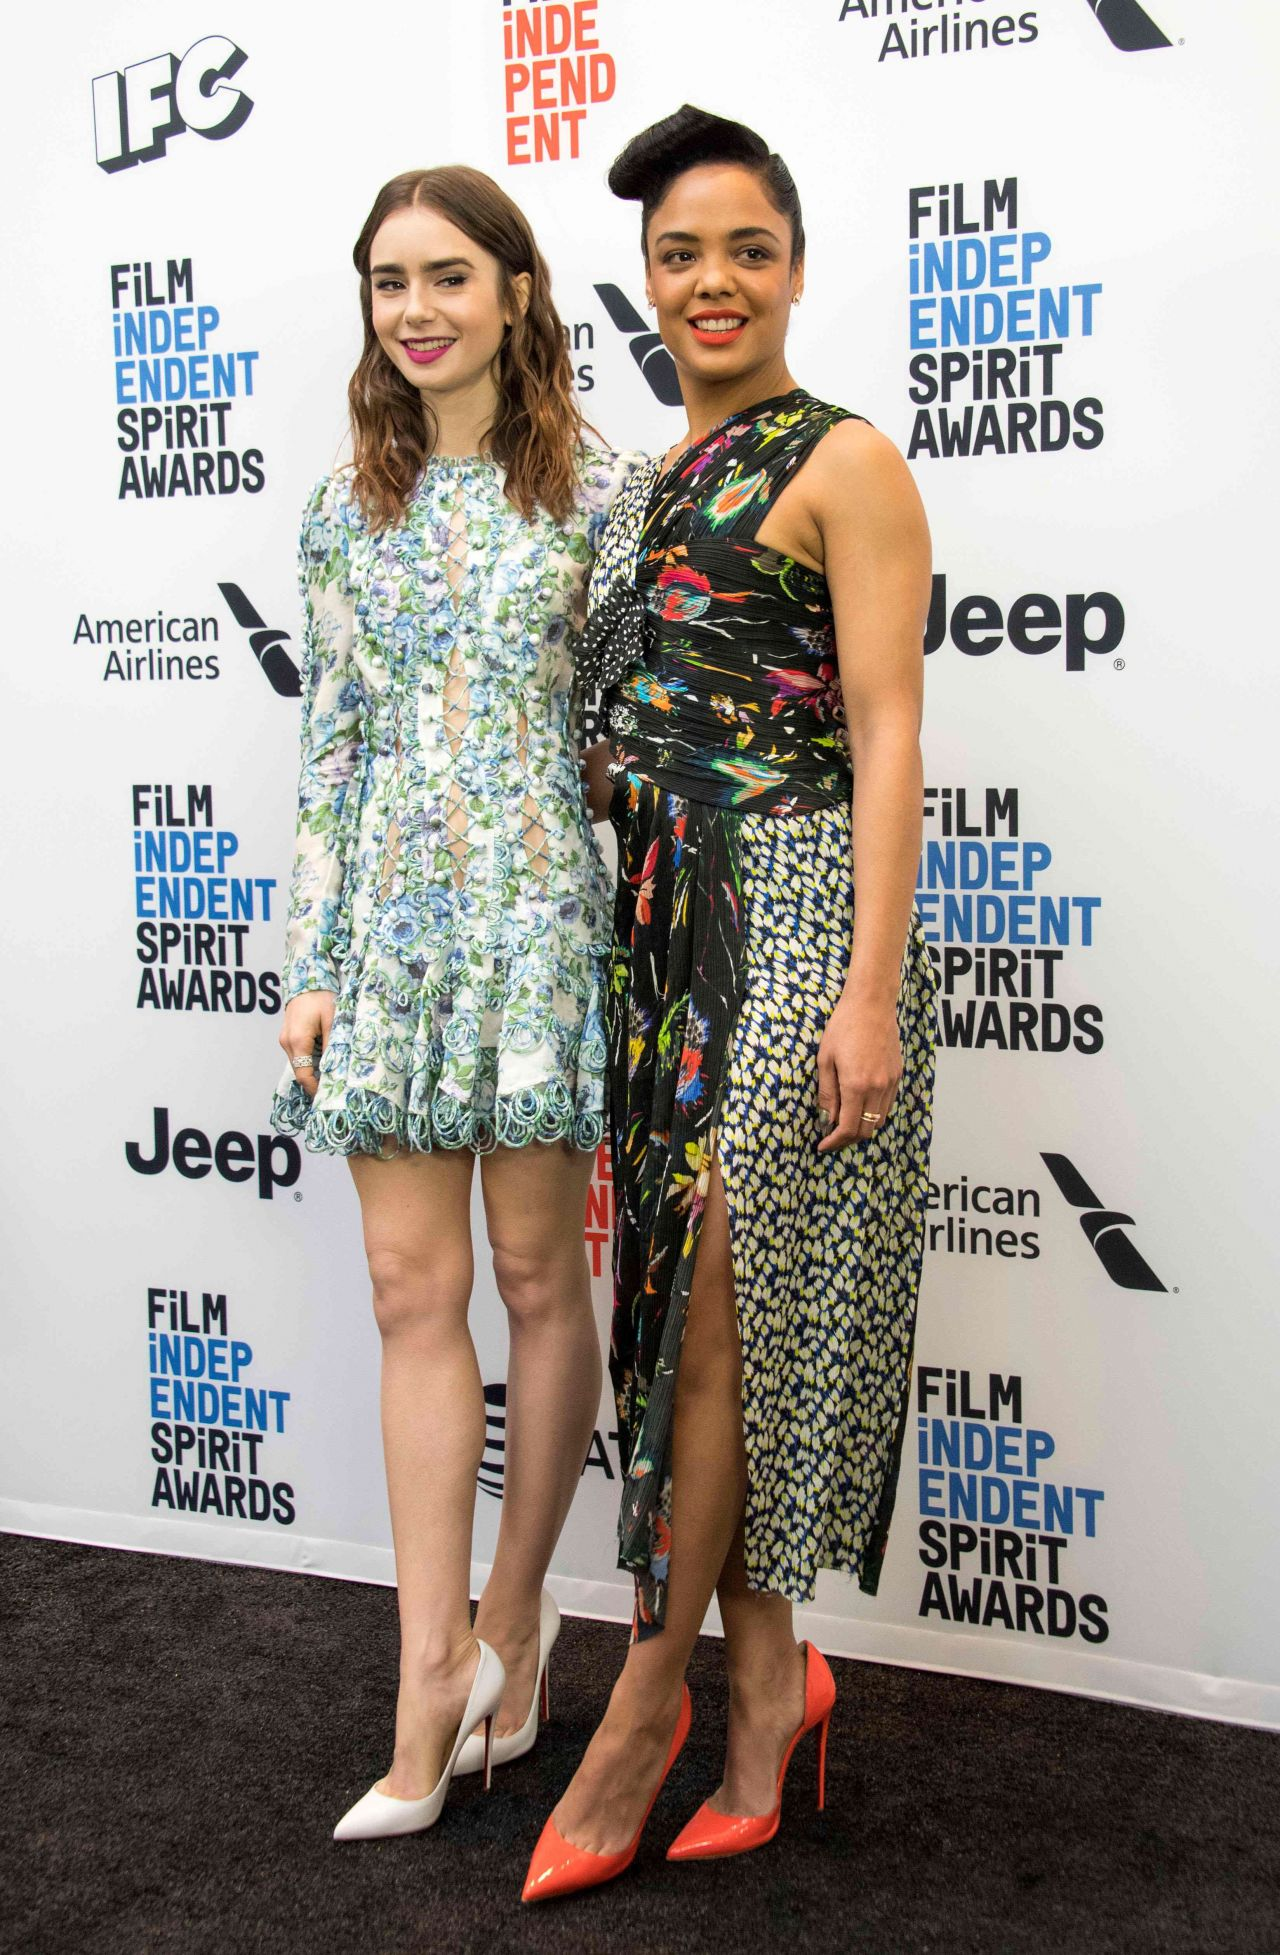 Lily Collins - Film Independent 2018 Spirit Awards Press Conference in West Hollywood 11/21/2017